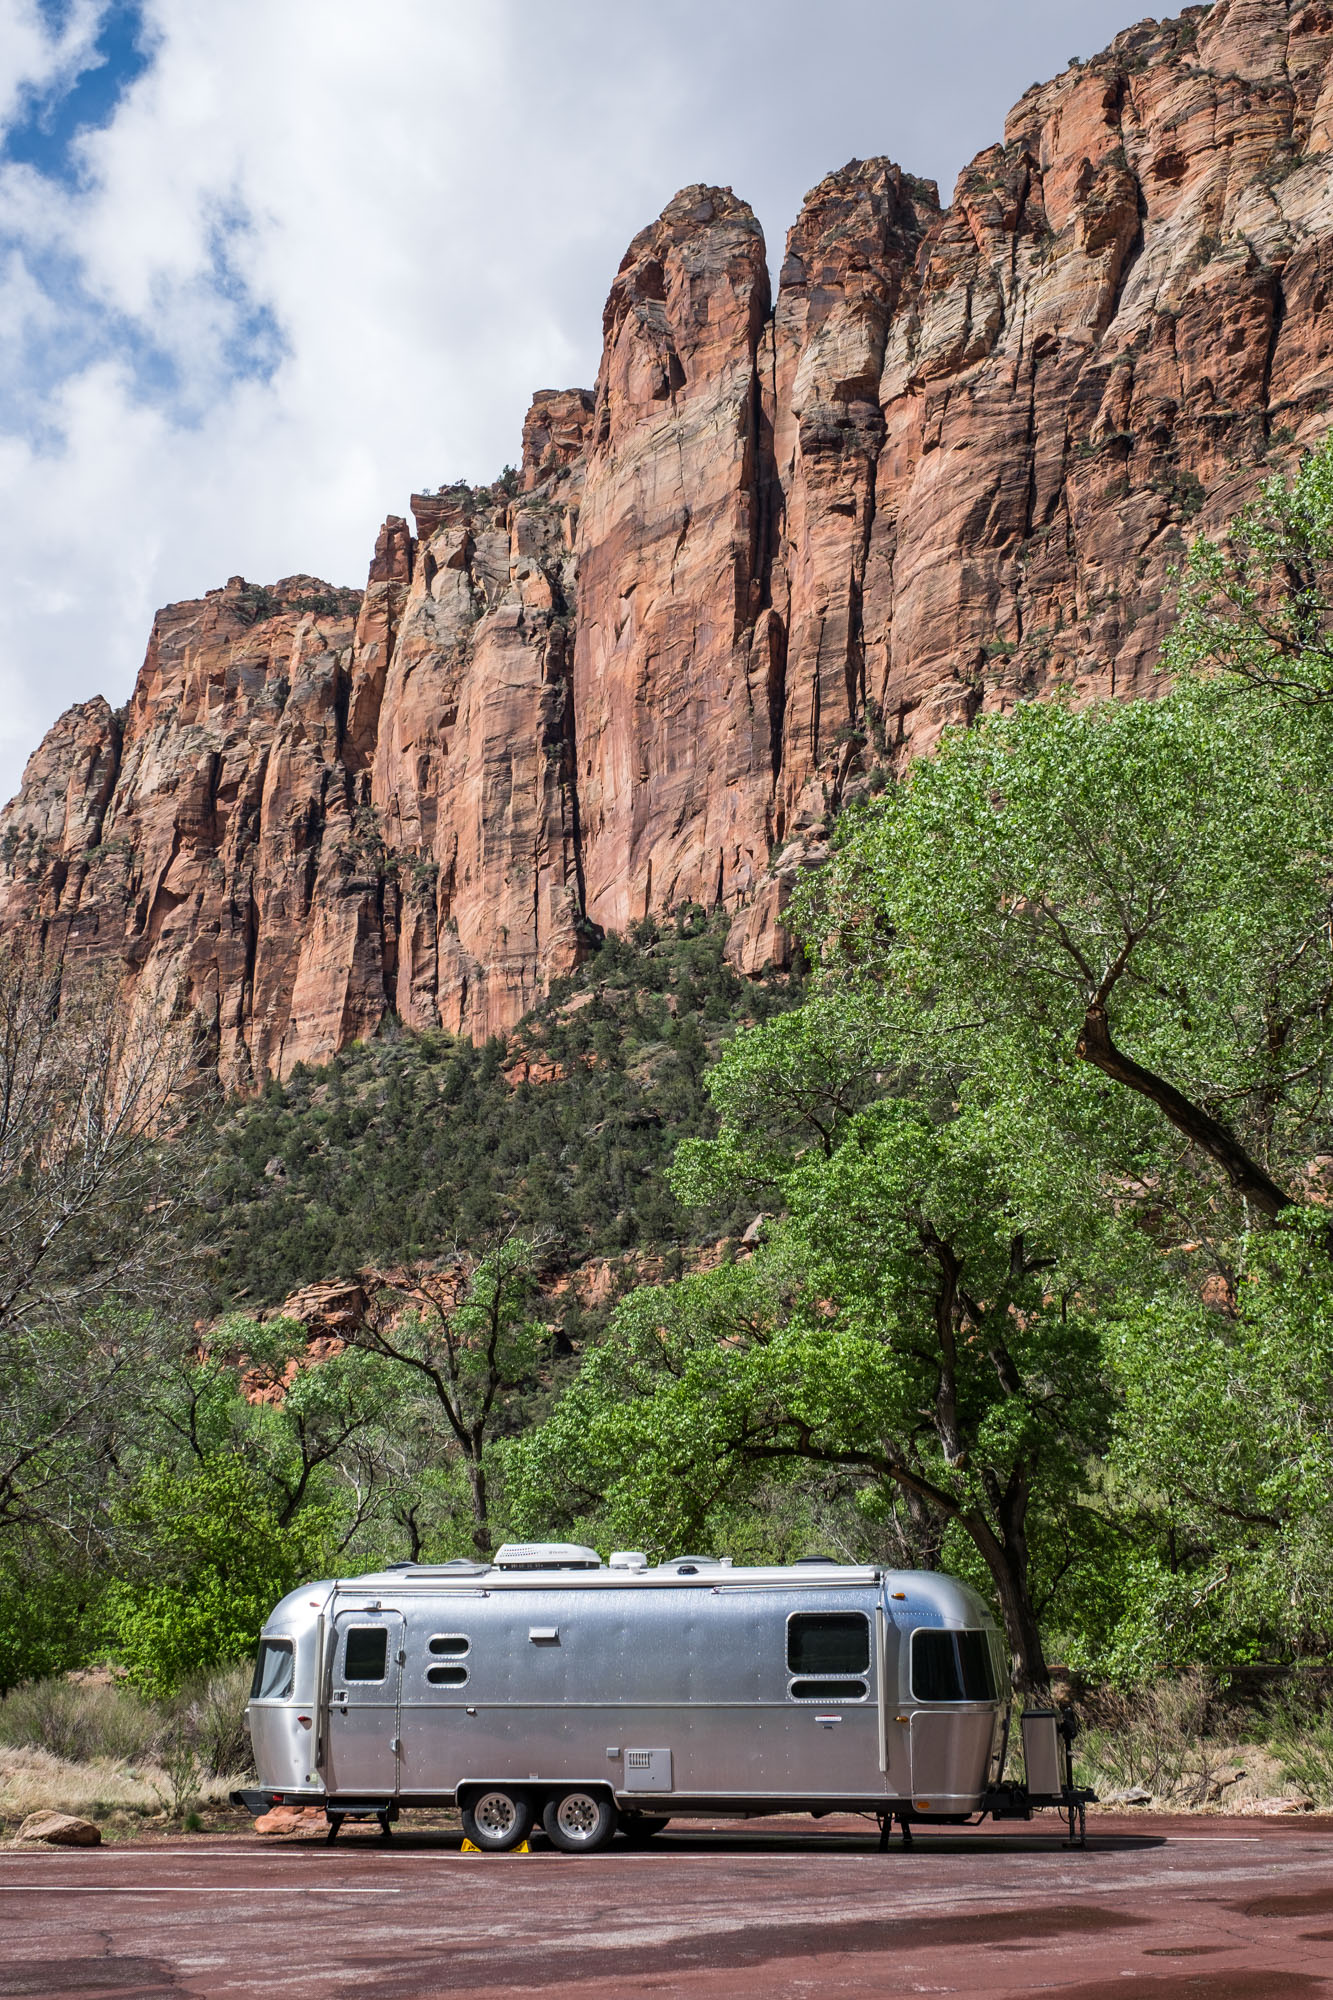 Wally looks very happy in the Zion valley.